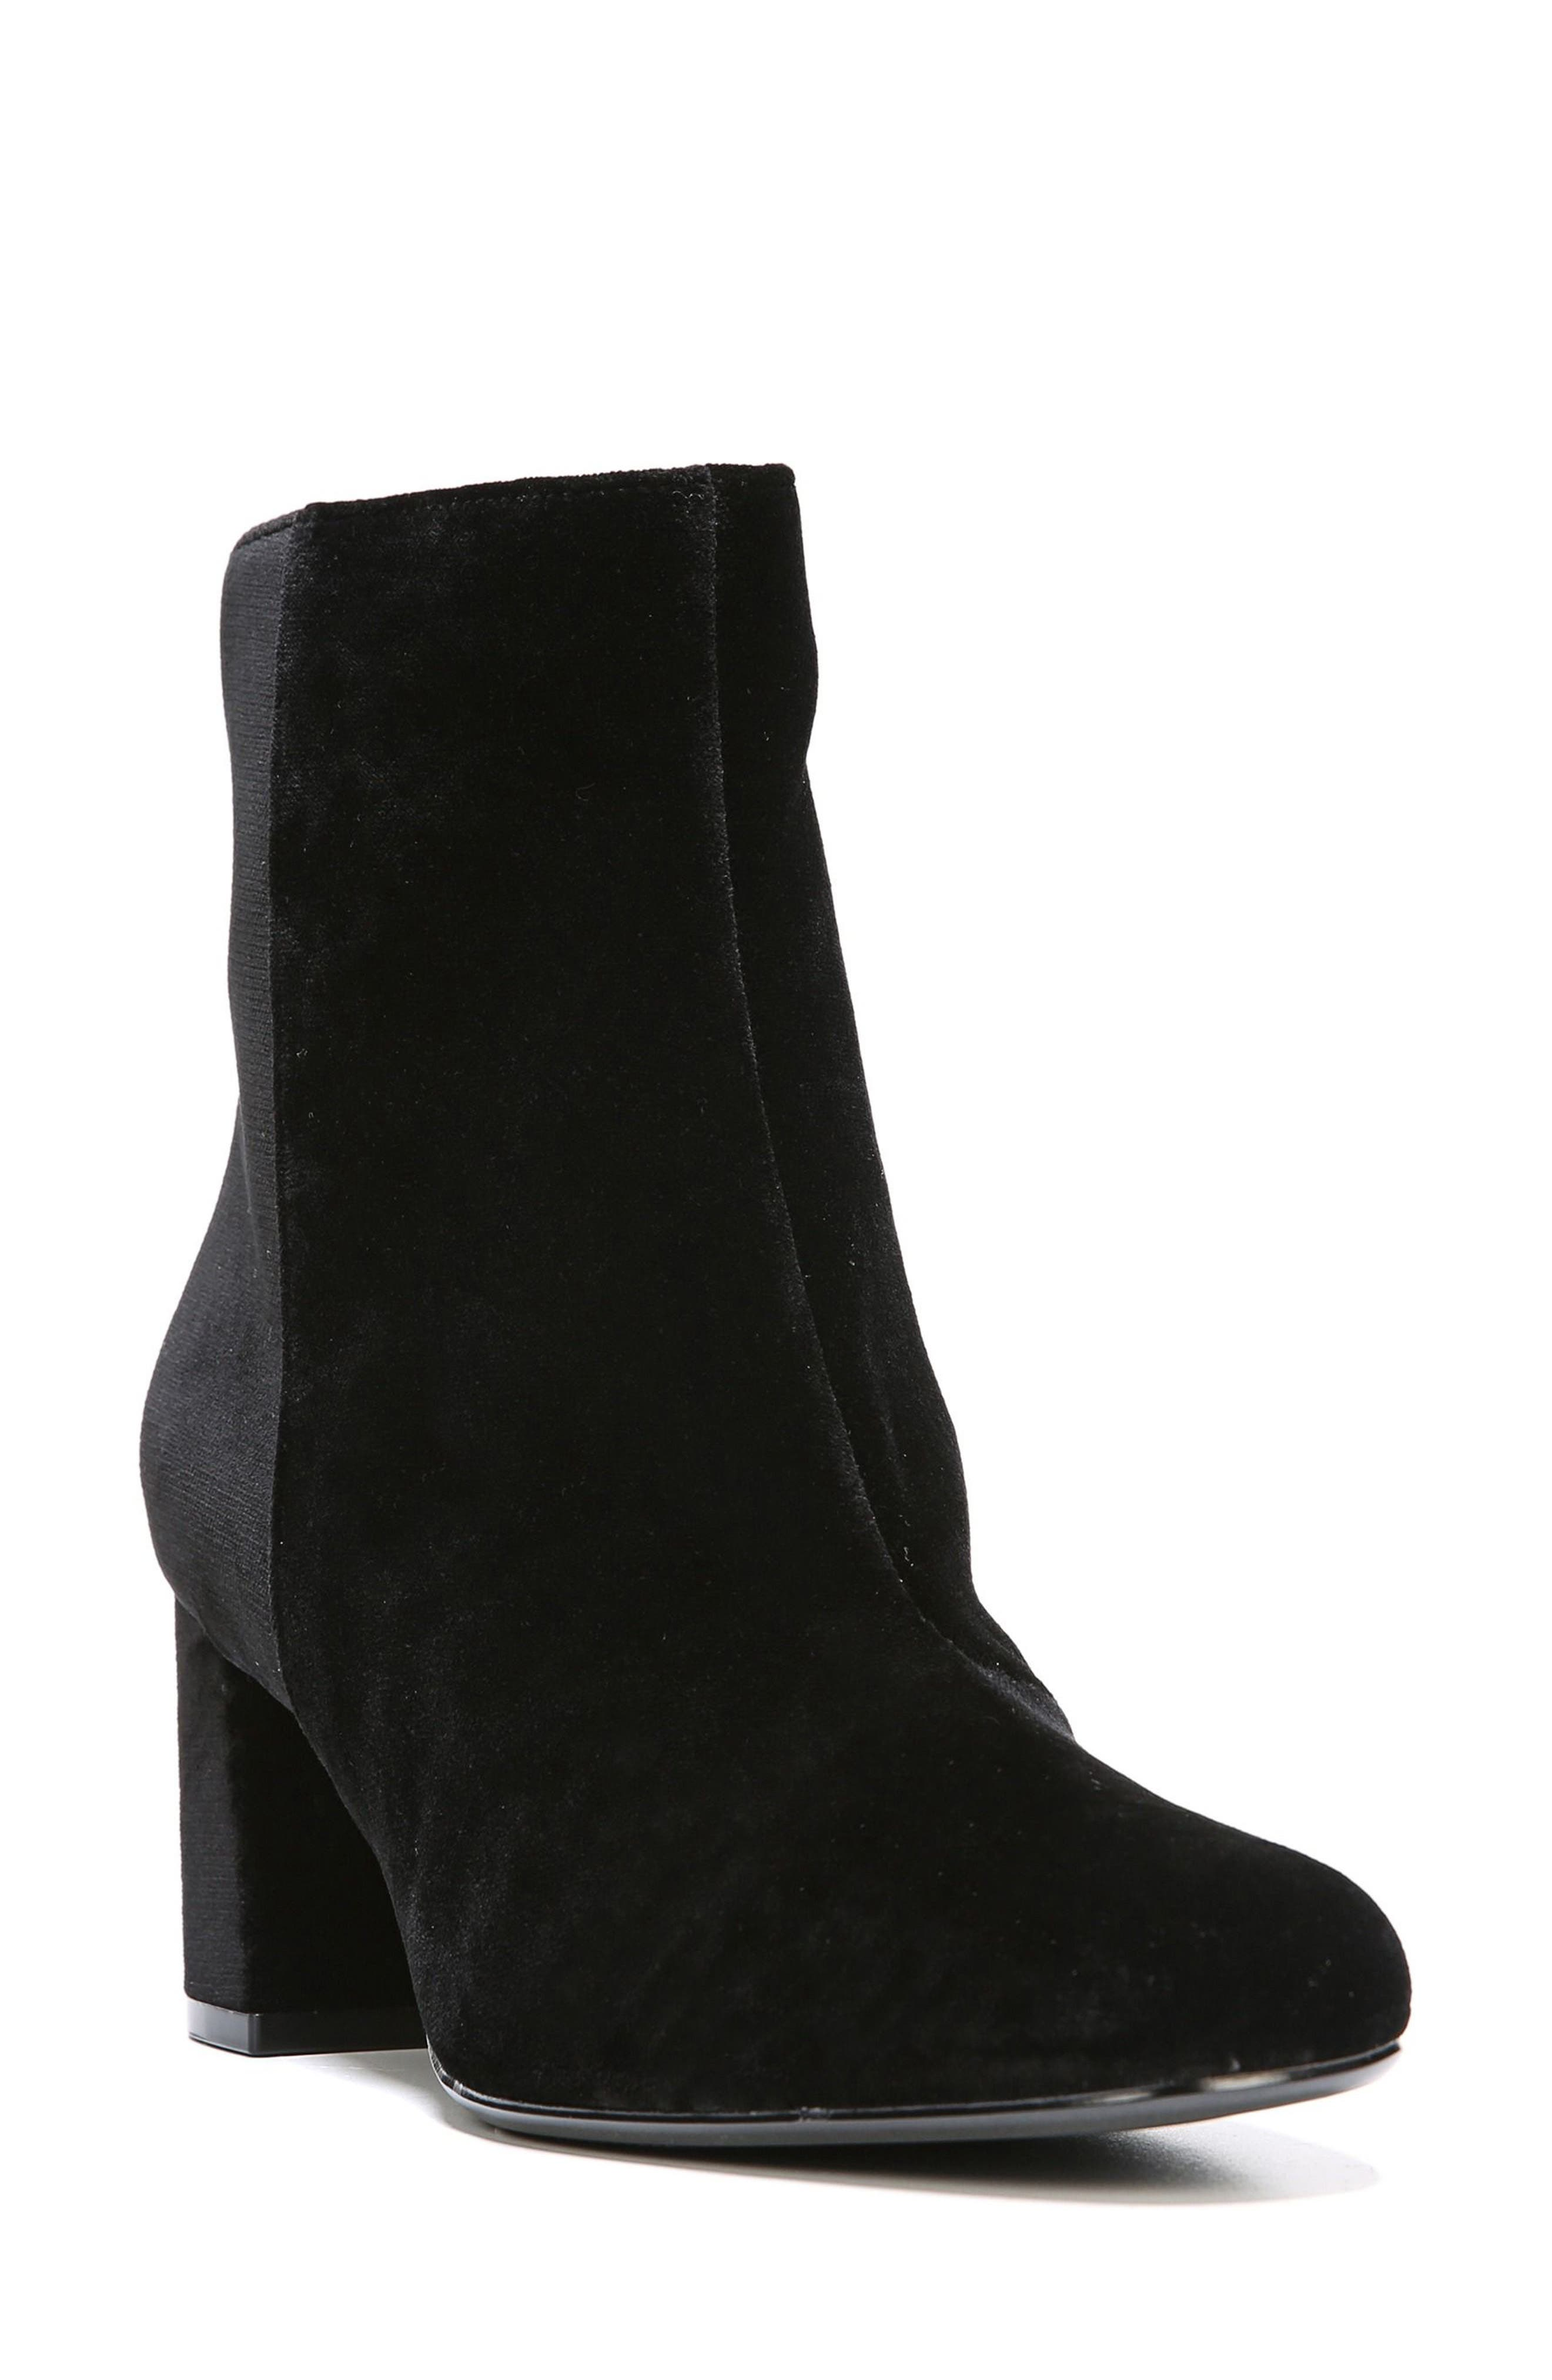 Westing Bootie,                         Main,                         color, 004